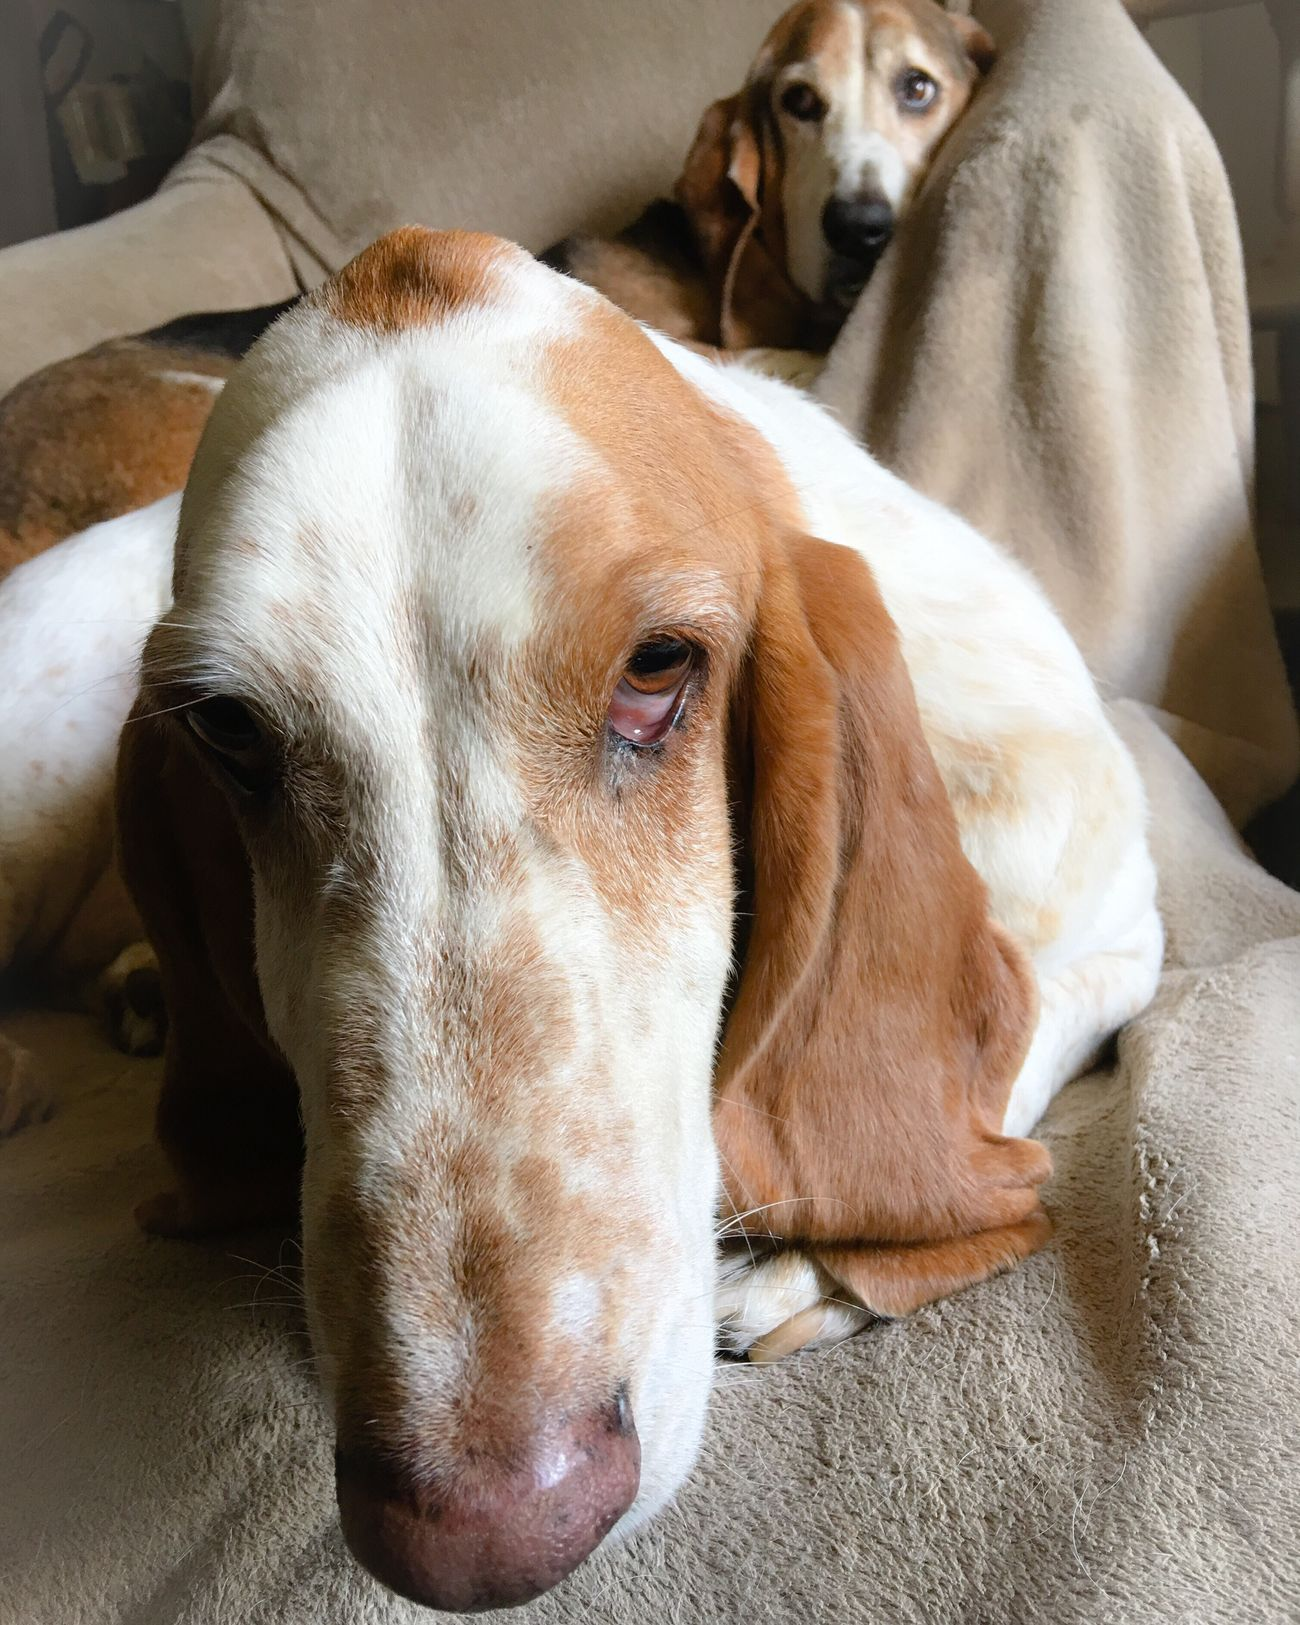 My William the poser and my Cooper the photo bomber Check This Out Hanging Out Hello World Enjoying Life Myseniorhound Relaxedand Happy Bassetworld Ilovebassethounds Livinandlovinlife Bassetmoments Bassetphotography Posing For The Camera Iphonephotography Color Photography